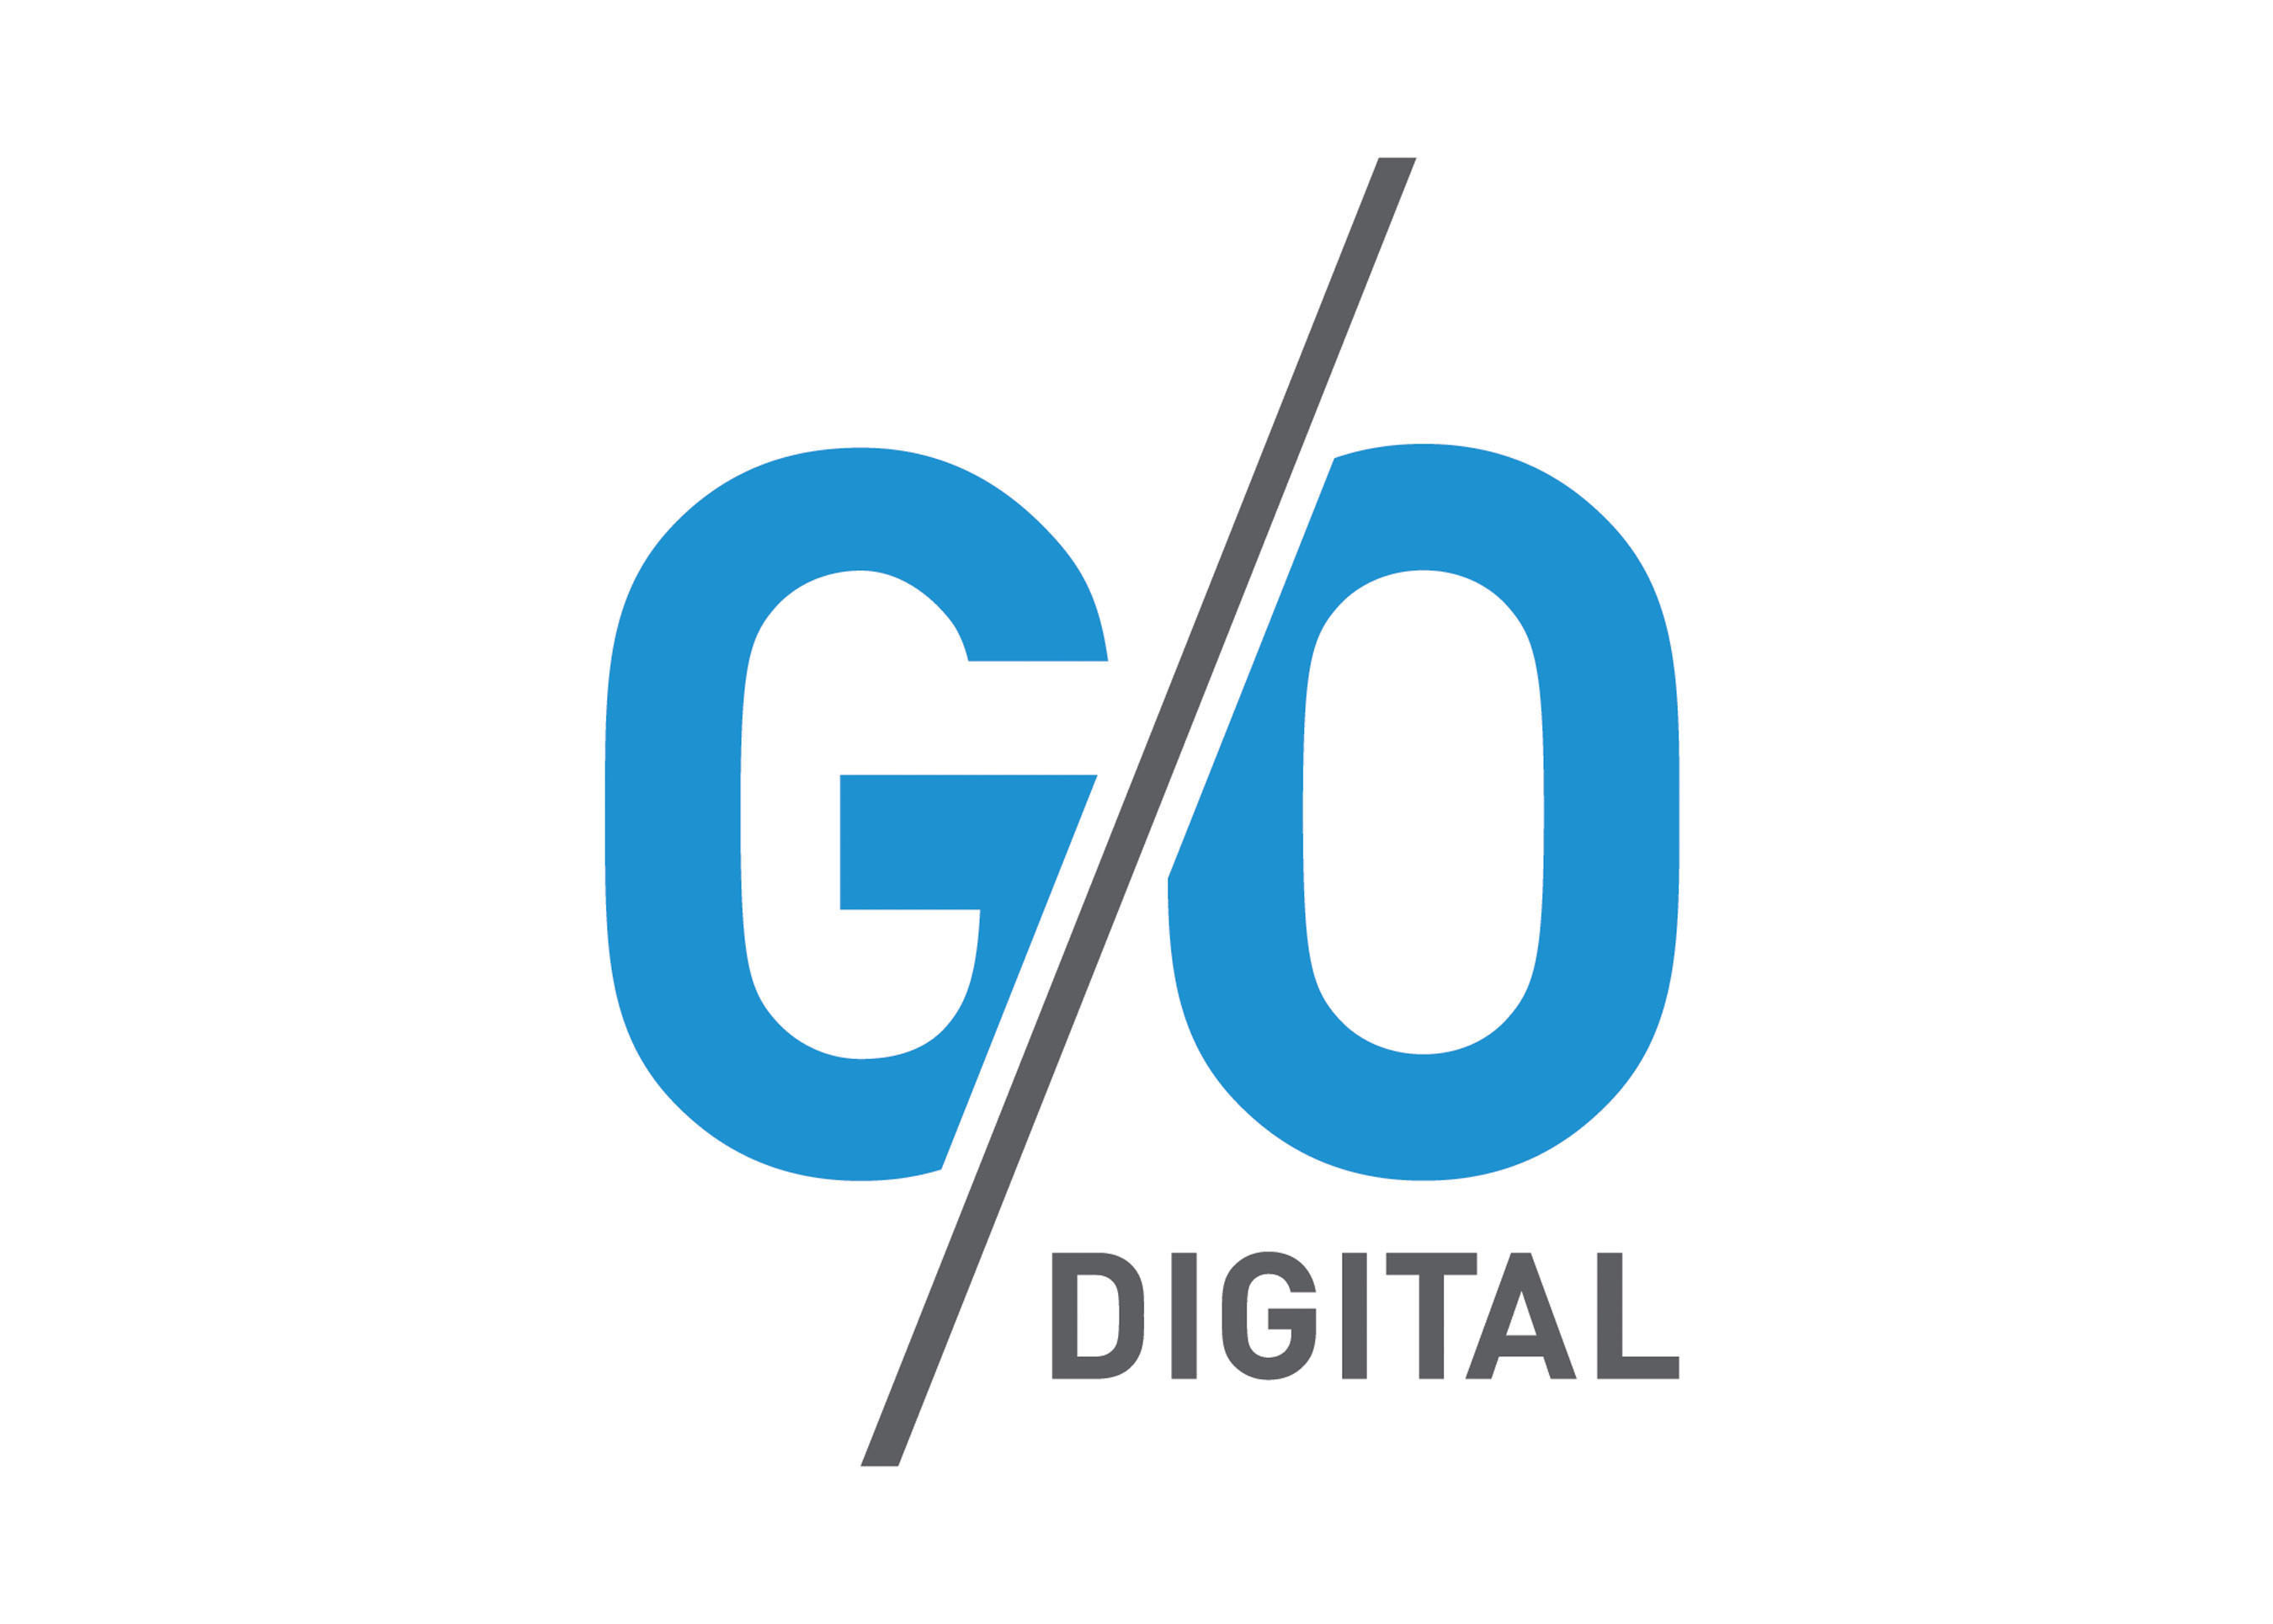 G/O Digital Teams Up with Entrepreneur to Reveal What SMBs Need to Expand Investment in the Digital Space